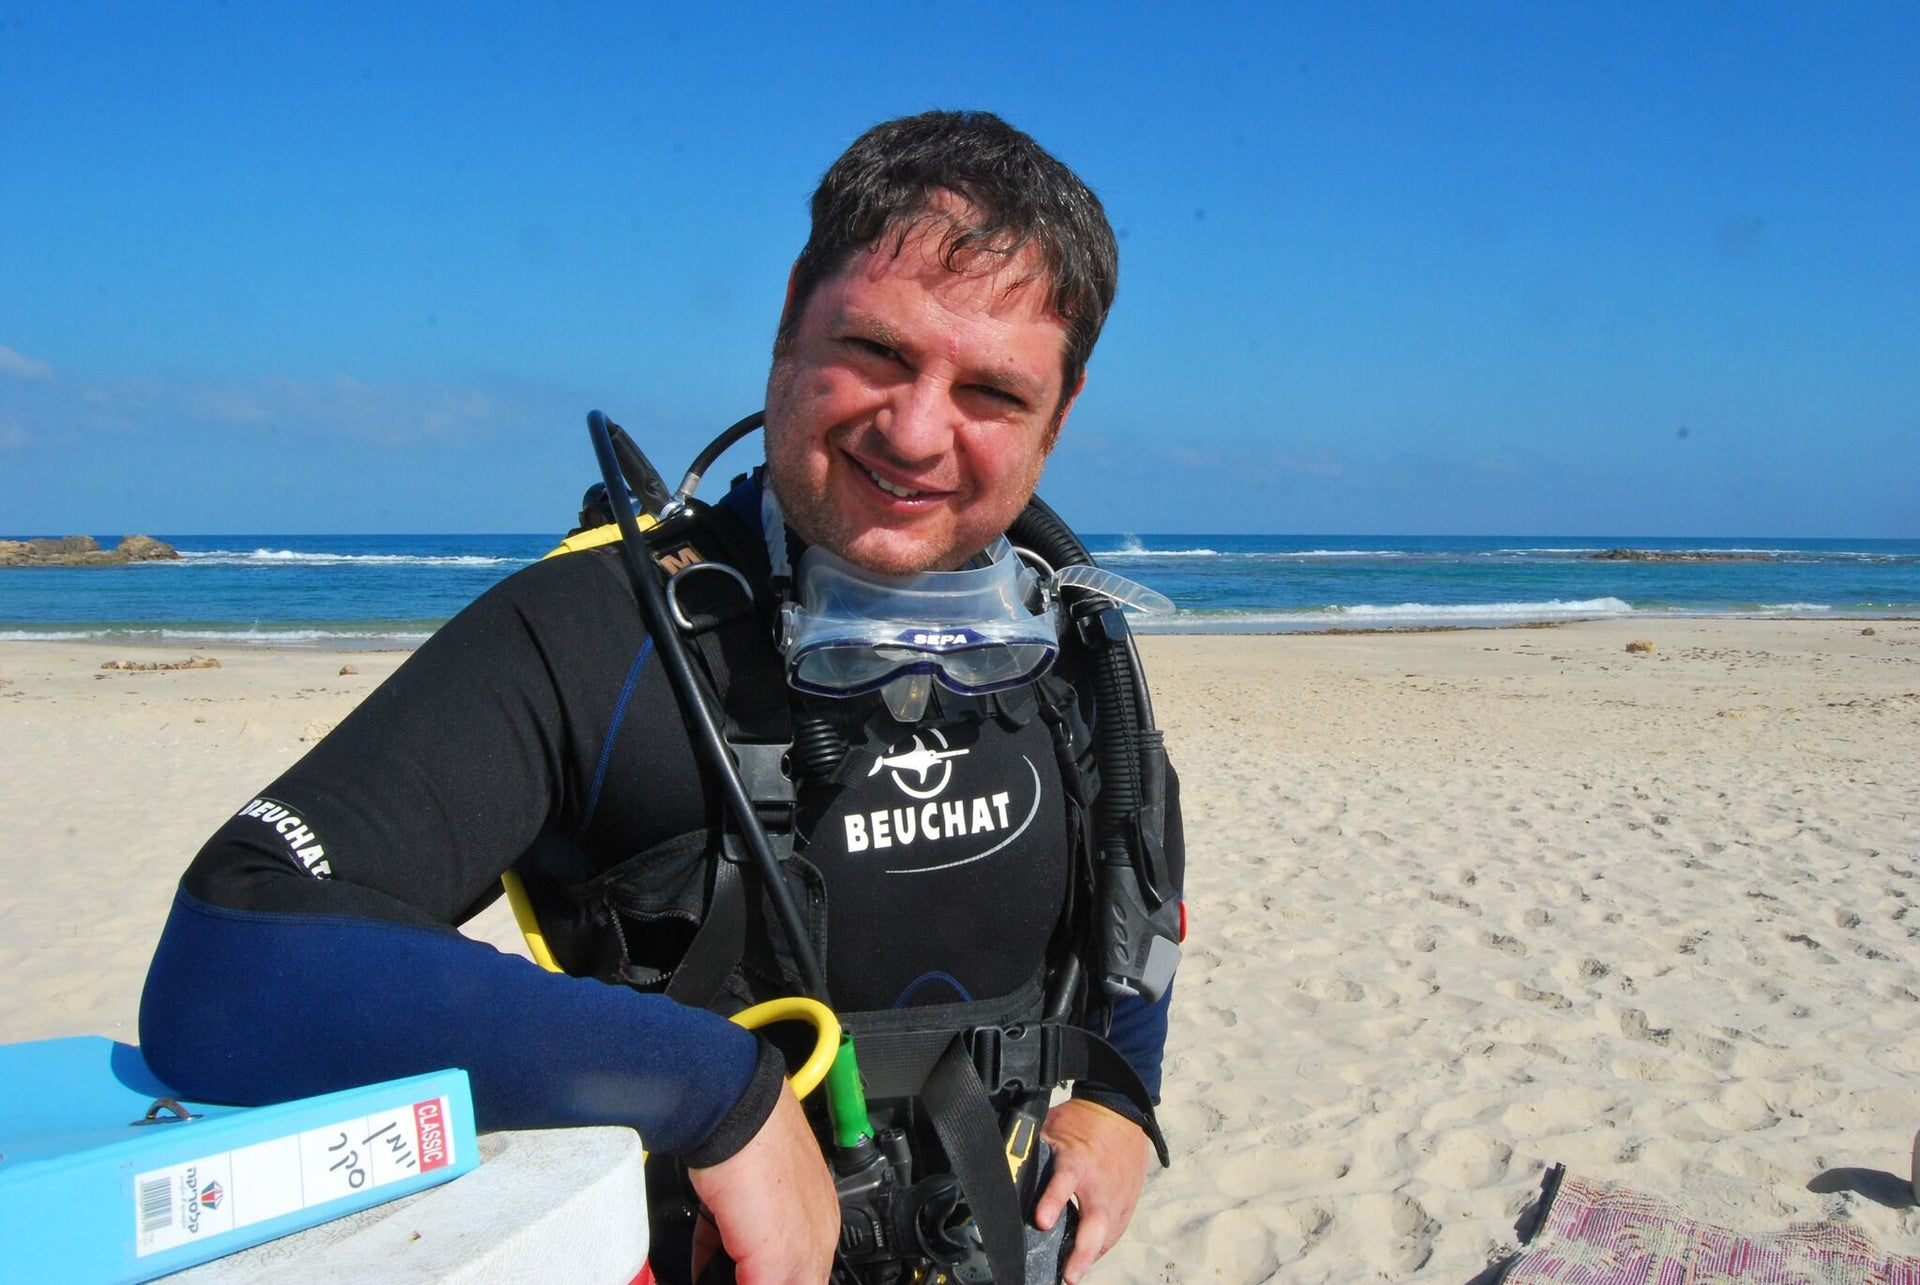 """Marine archaeologist Dr. Assaf Yasur-Landau, in diving gear: """"We knew that another storm would be coming within days, so we decided to extract it rather than risk the stone being reburied in the sand."""""""